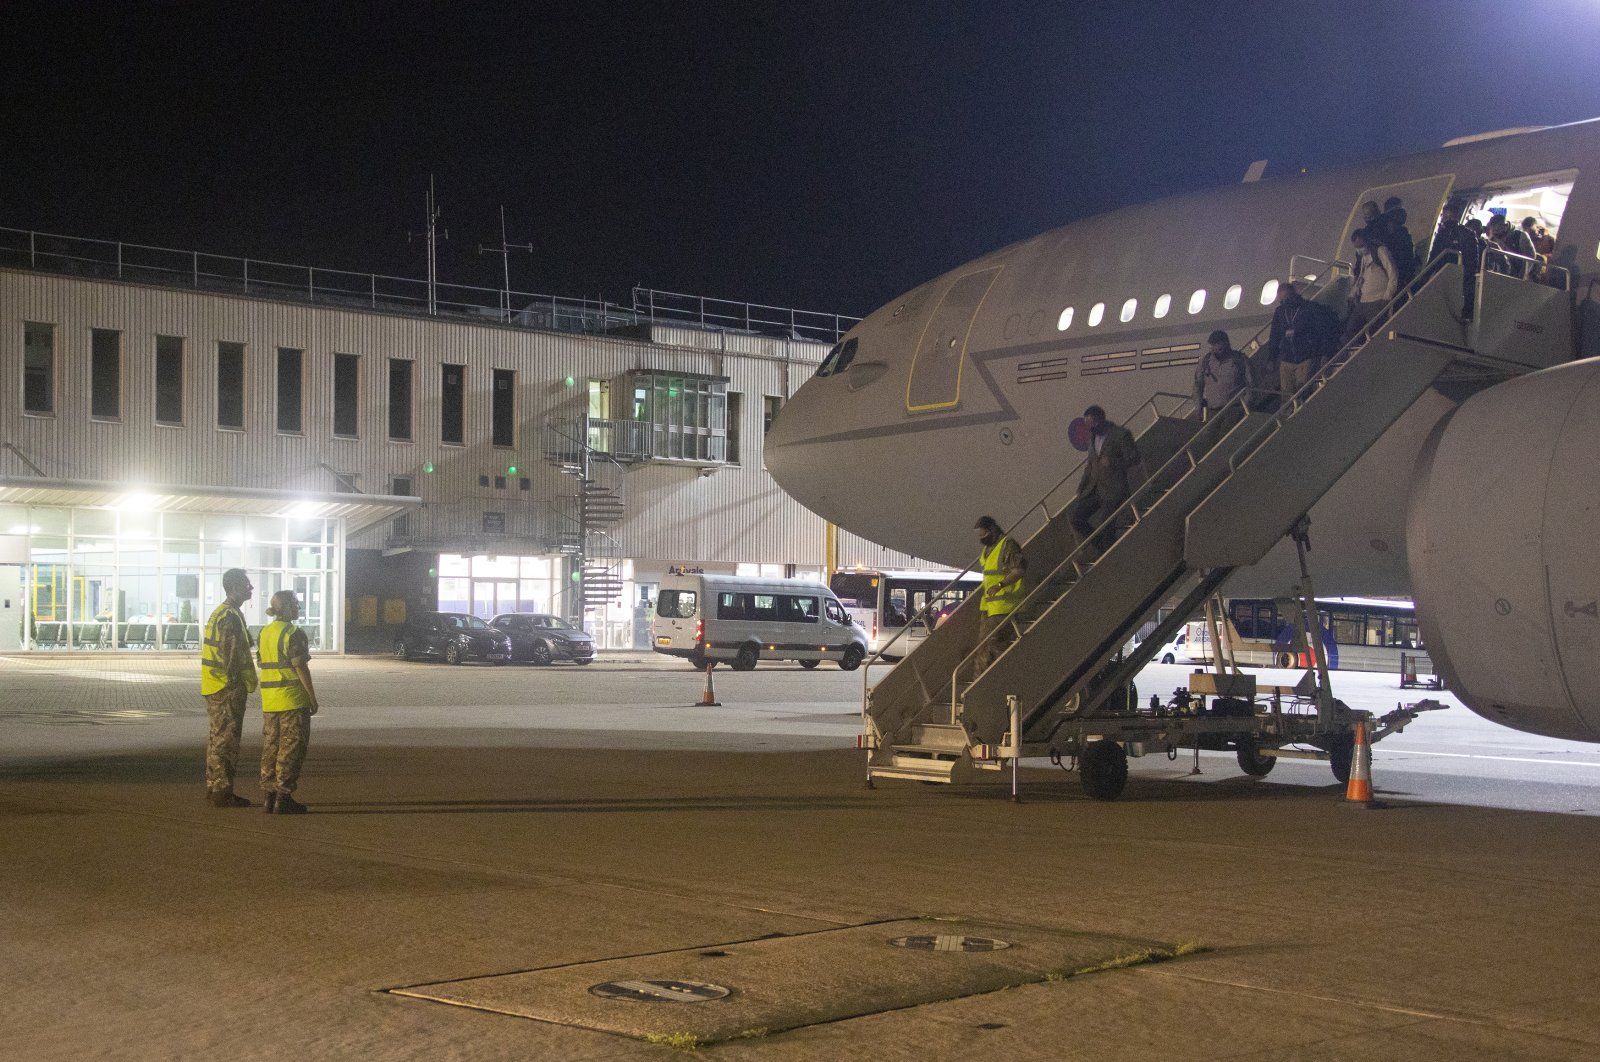 The first flight carrying British Embassy personnel and British nationals evacuated from Kabul, arriving at RAF Brize Norton in Oxfordshire, U.K., on Aug. 16, 2021. (AP Photo)